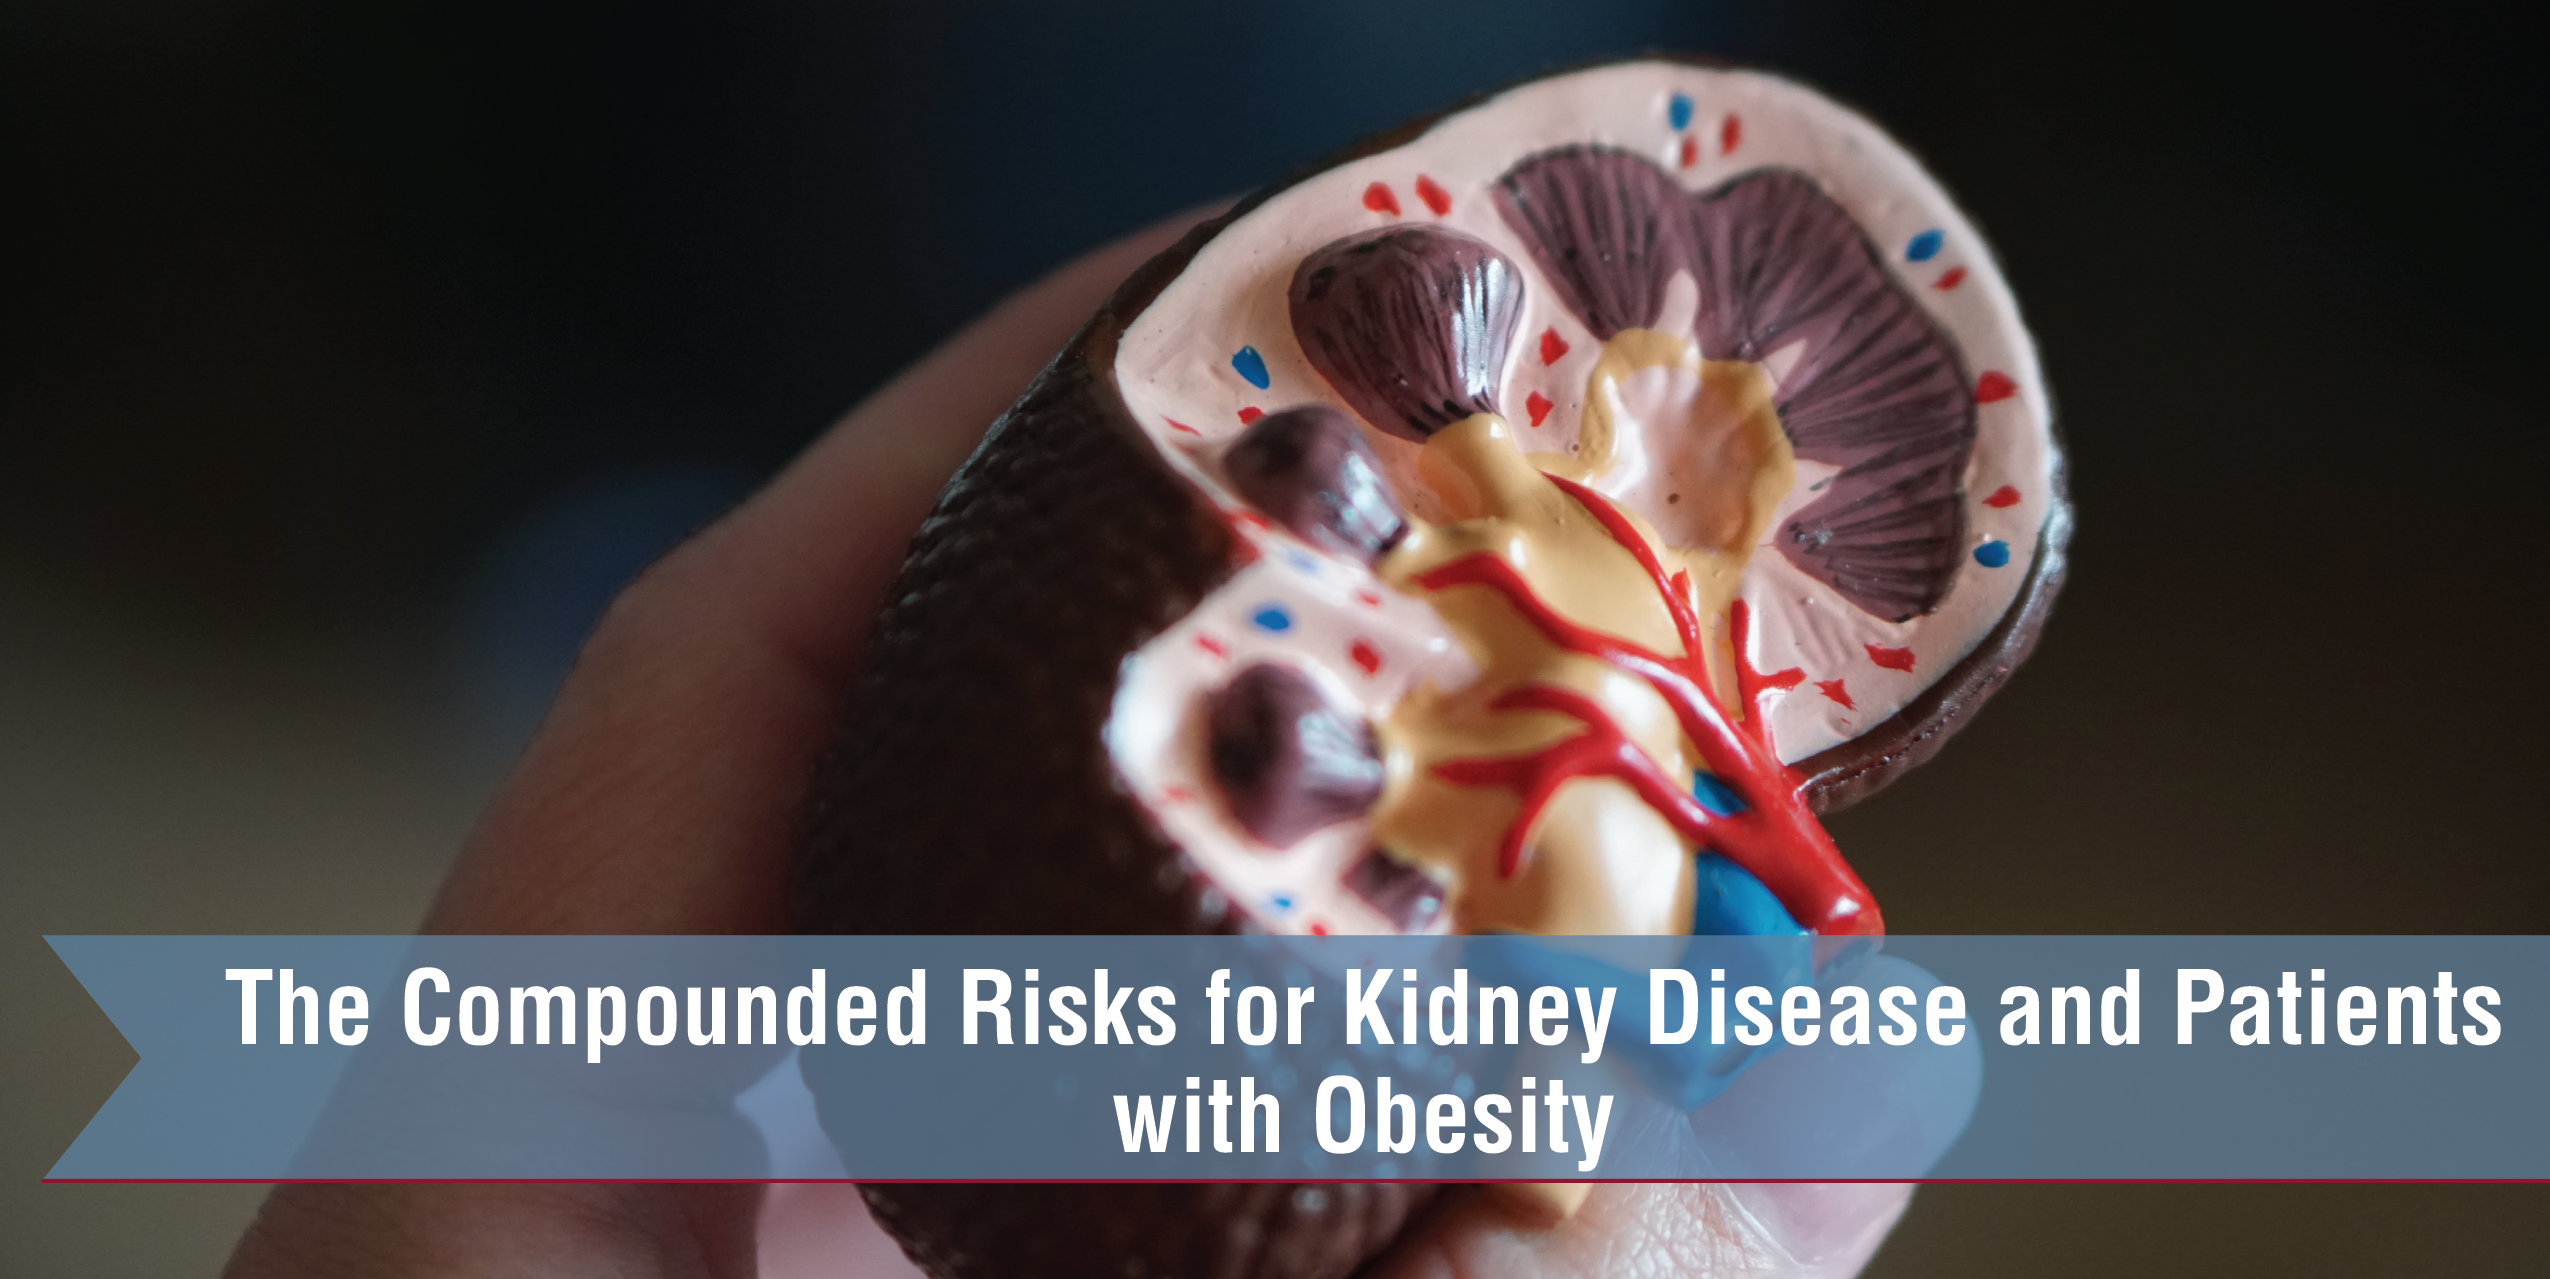 The Compounded Risks For Kidney Disease And Patients With Obesity